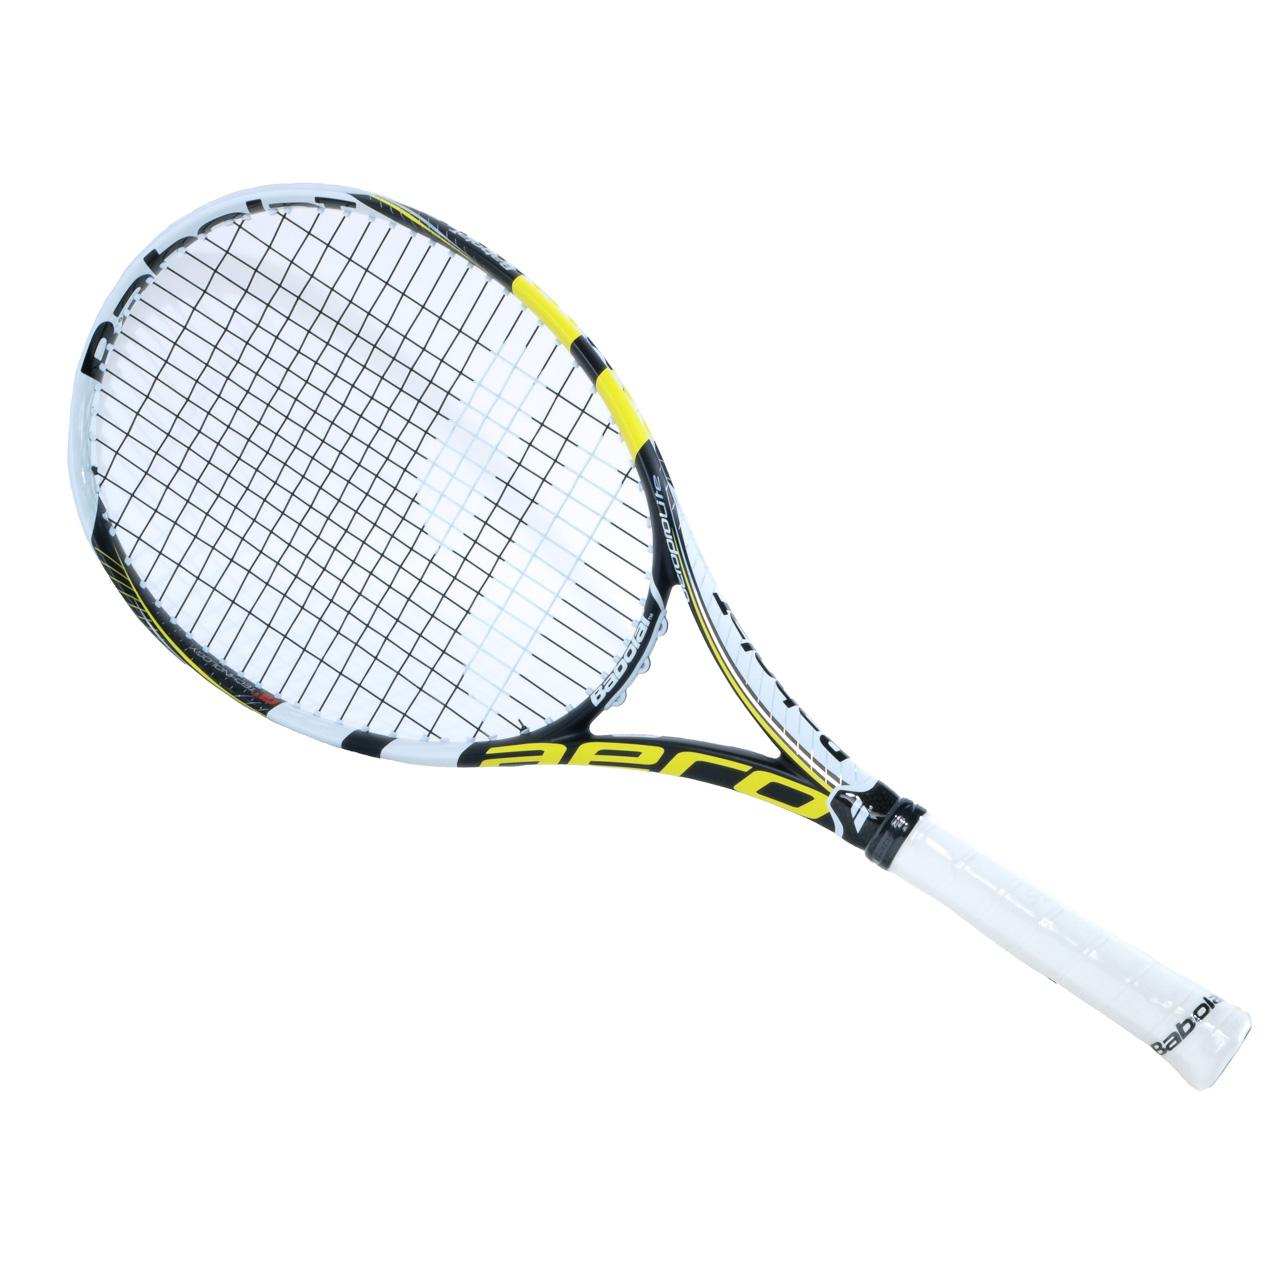 raquette de tennis babolat aeropro lite gt 13 jaune 11905 neuf eur 126 99 picclick fr. Black Bedroom Furniture Sets. Home Design Ideas